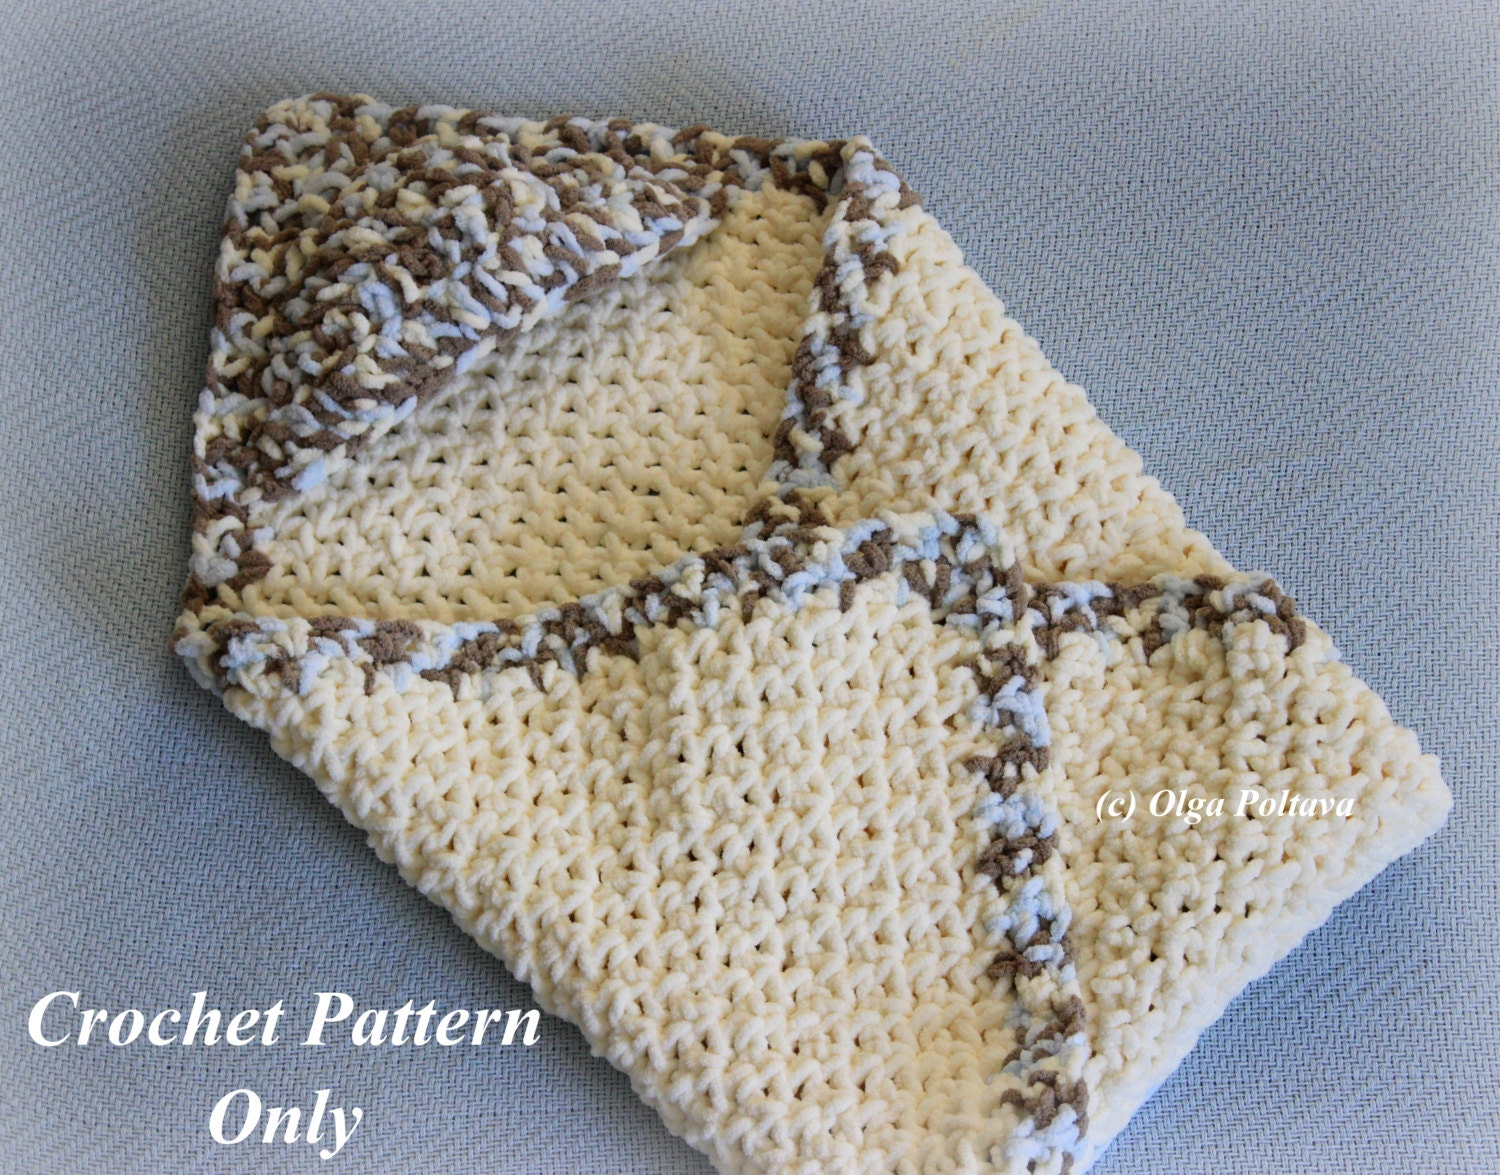 Hooded baby blanket crochet pattern easy to make bernat baby zoom bankloansurffo Choice Image